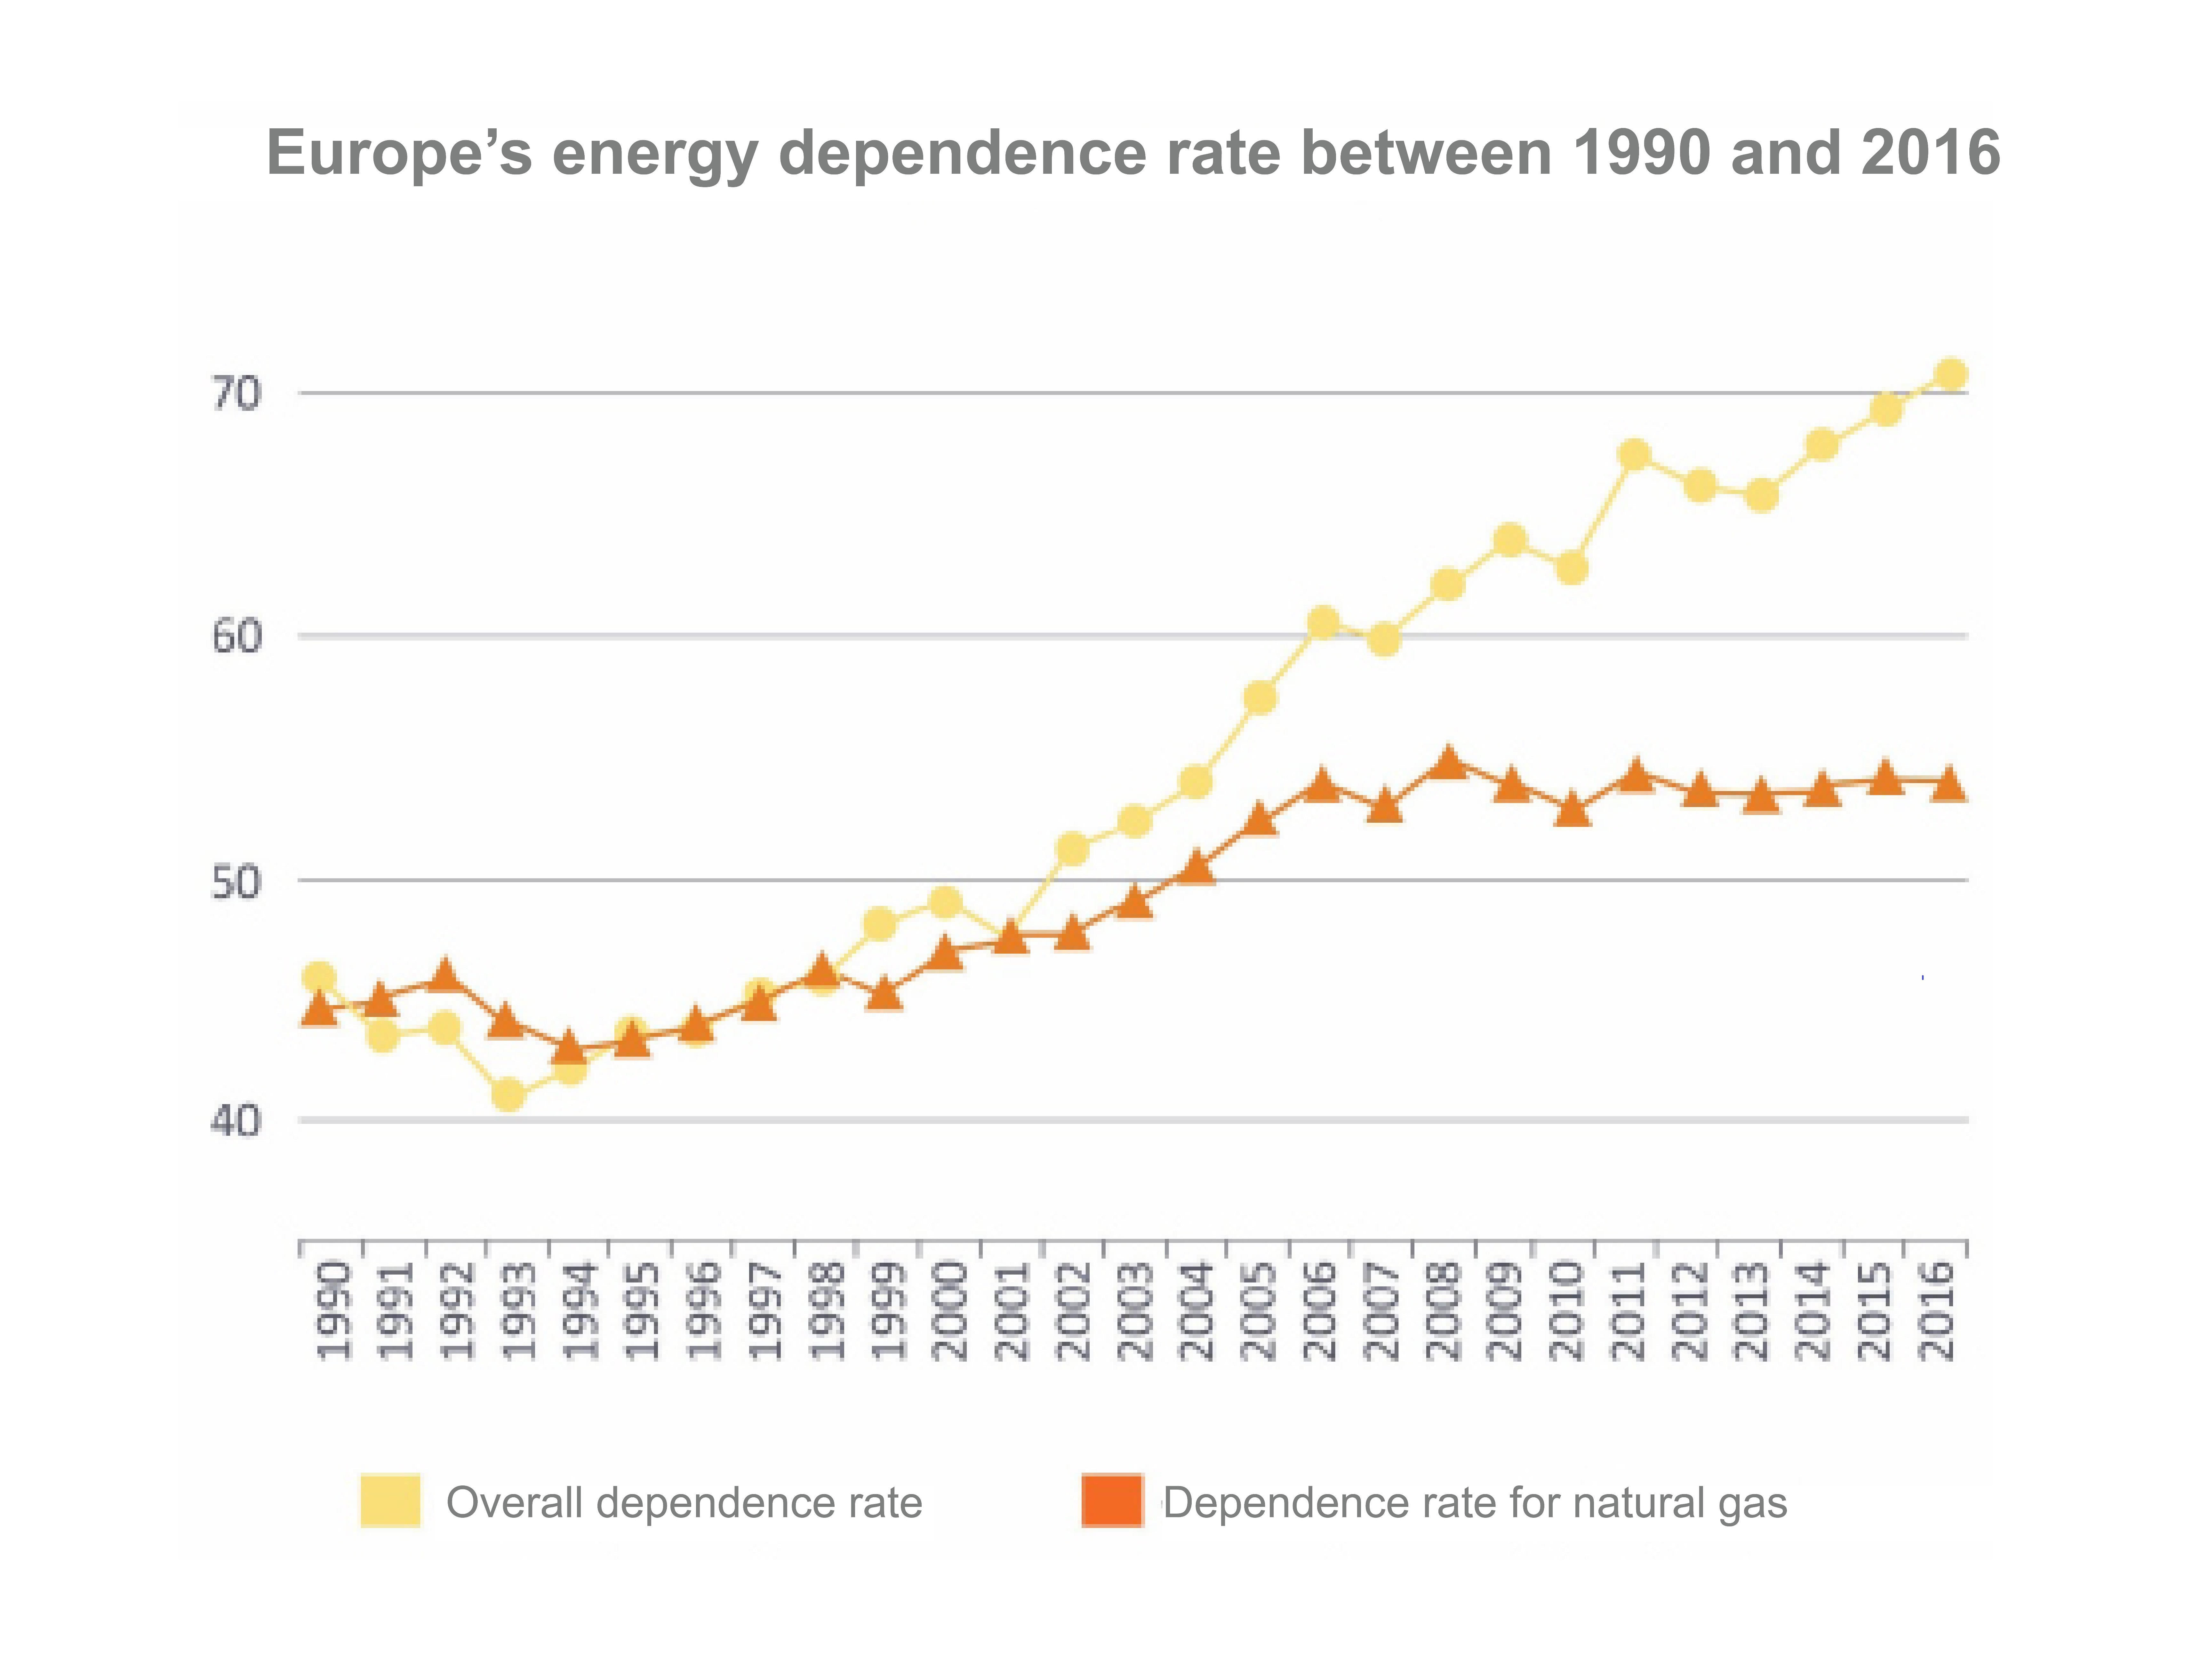 Europe's energy dependence rate between 1990 and 2016